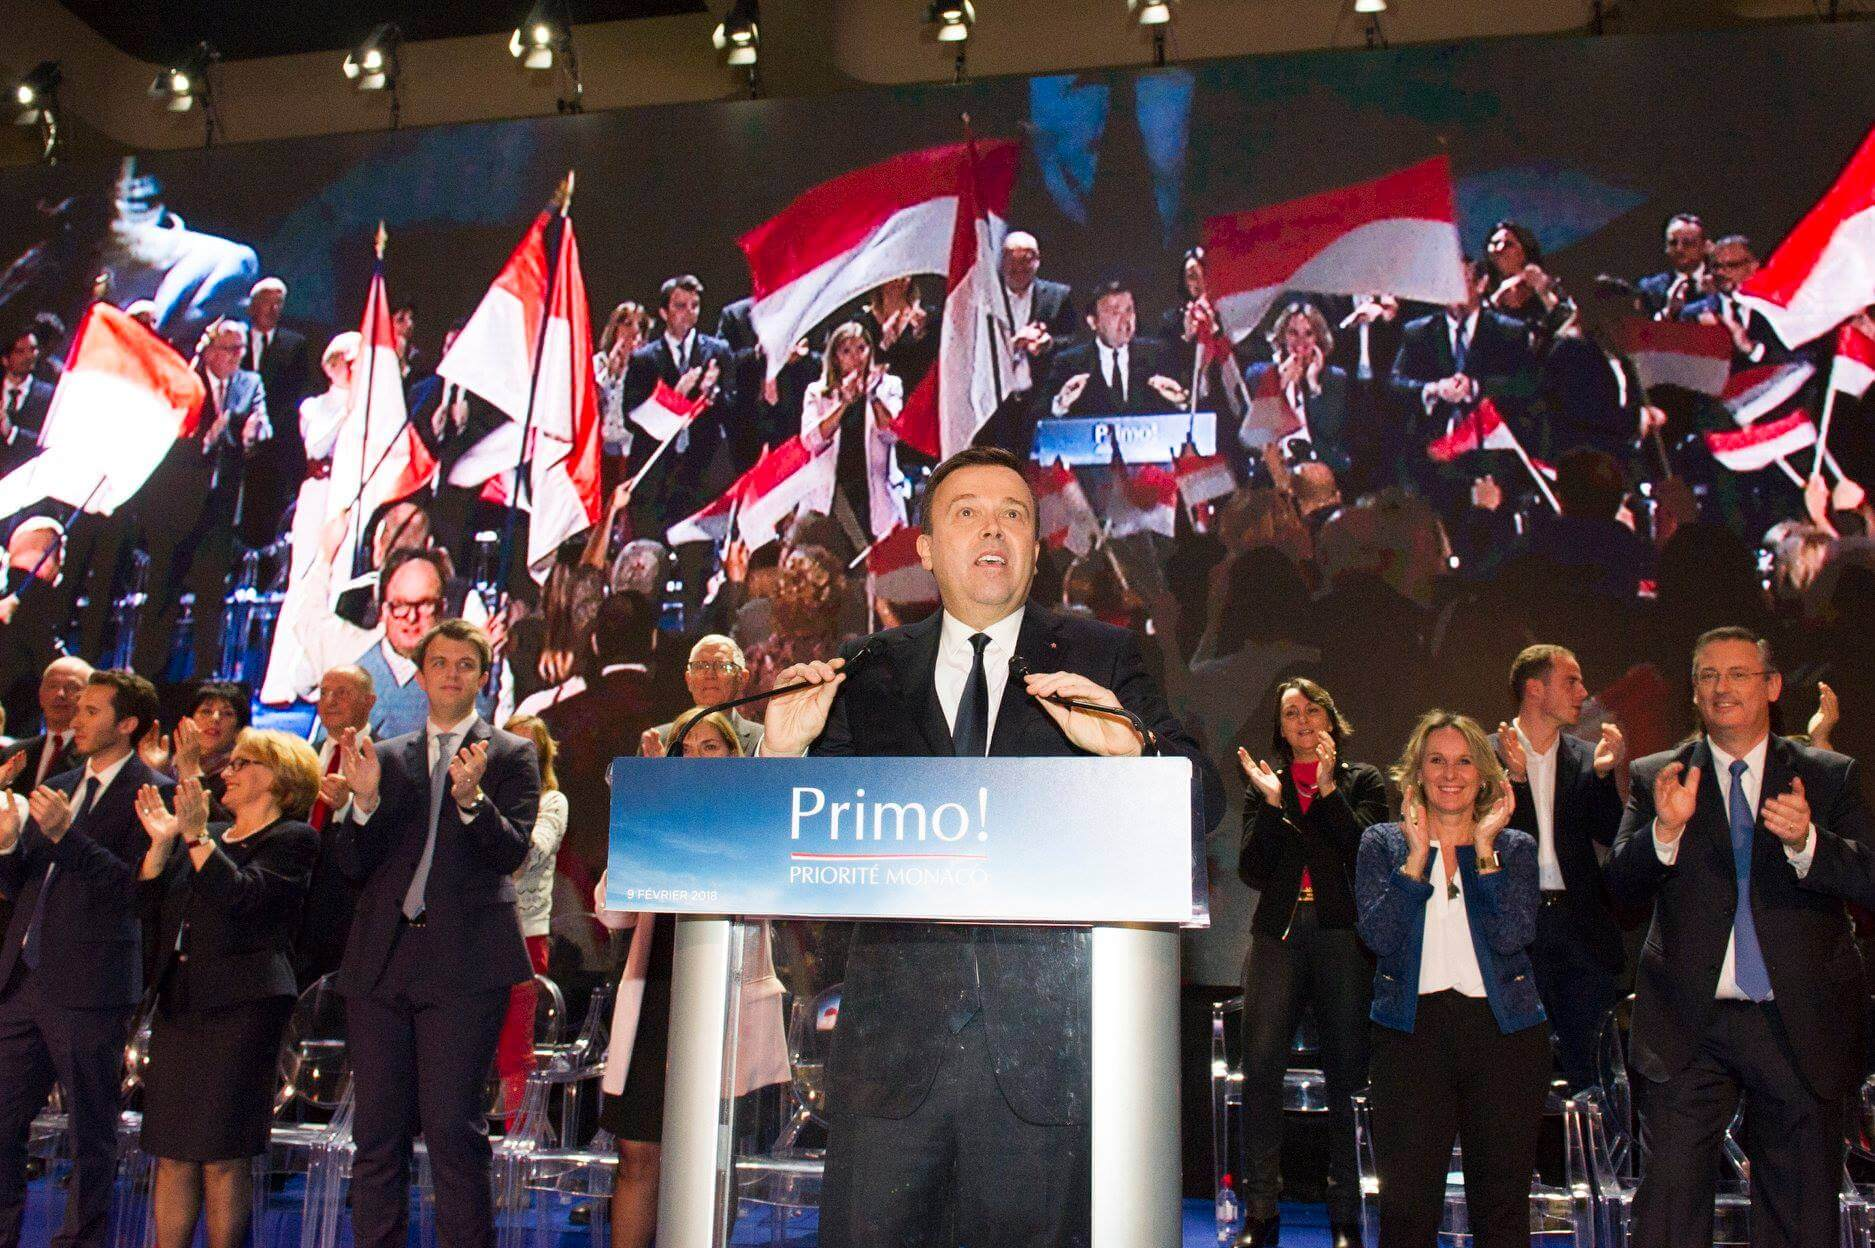 Photo of Monaco Election Results: Stephane Valeri and Primo! Sweep 21 out of 24 Seats in the National Council